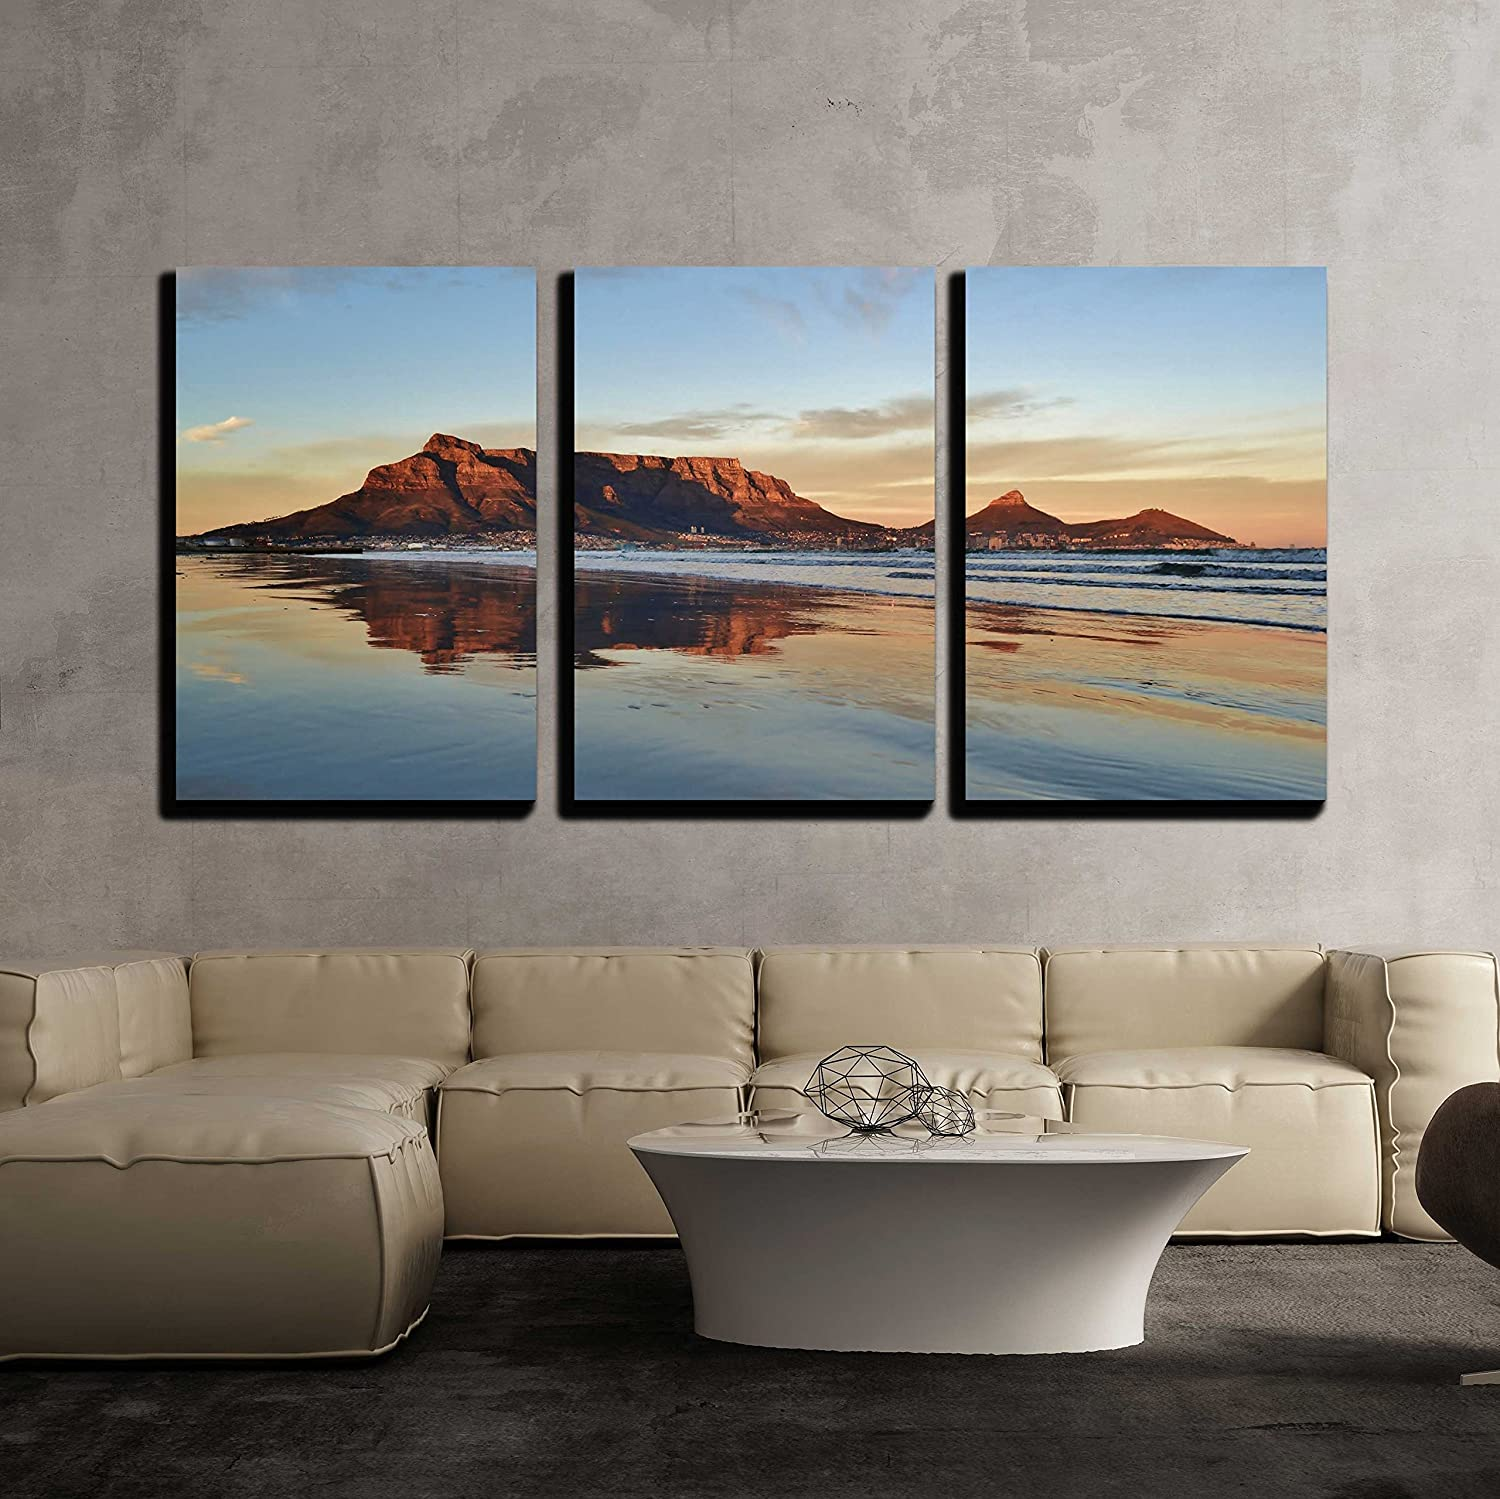 """wall26 - 3 Piece Canvas Wall Art - Landscape of Cape Town and Table Mountain at Sunrise - Modern Home Decor Stretched and Framed Ready to Hang - 24""""x36""""x3 Panels"""